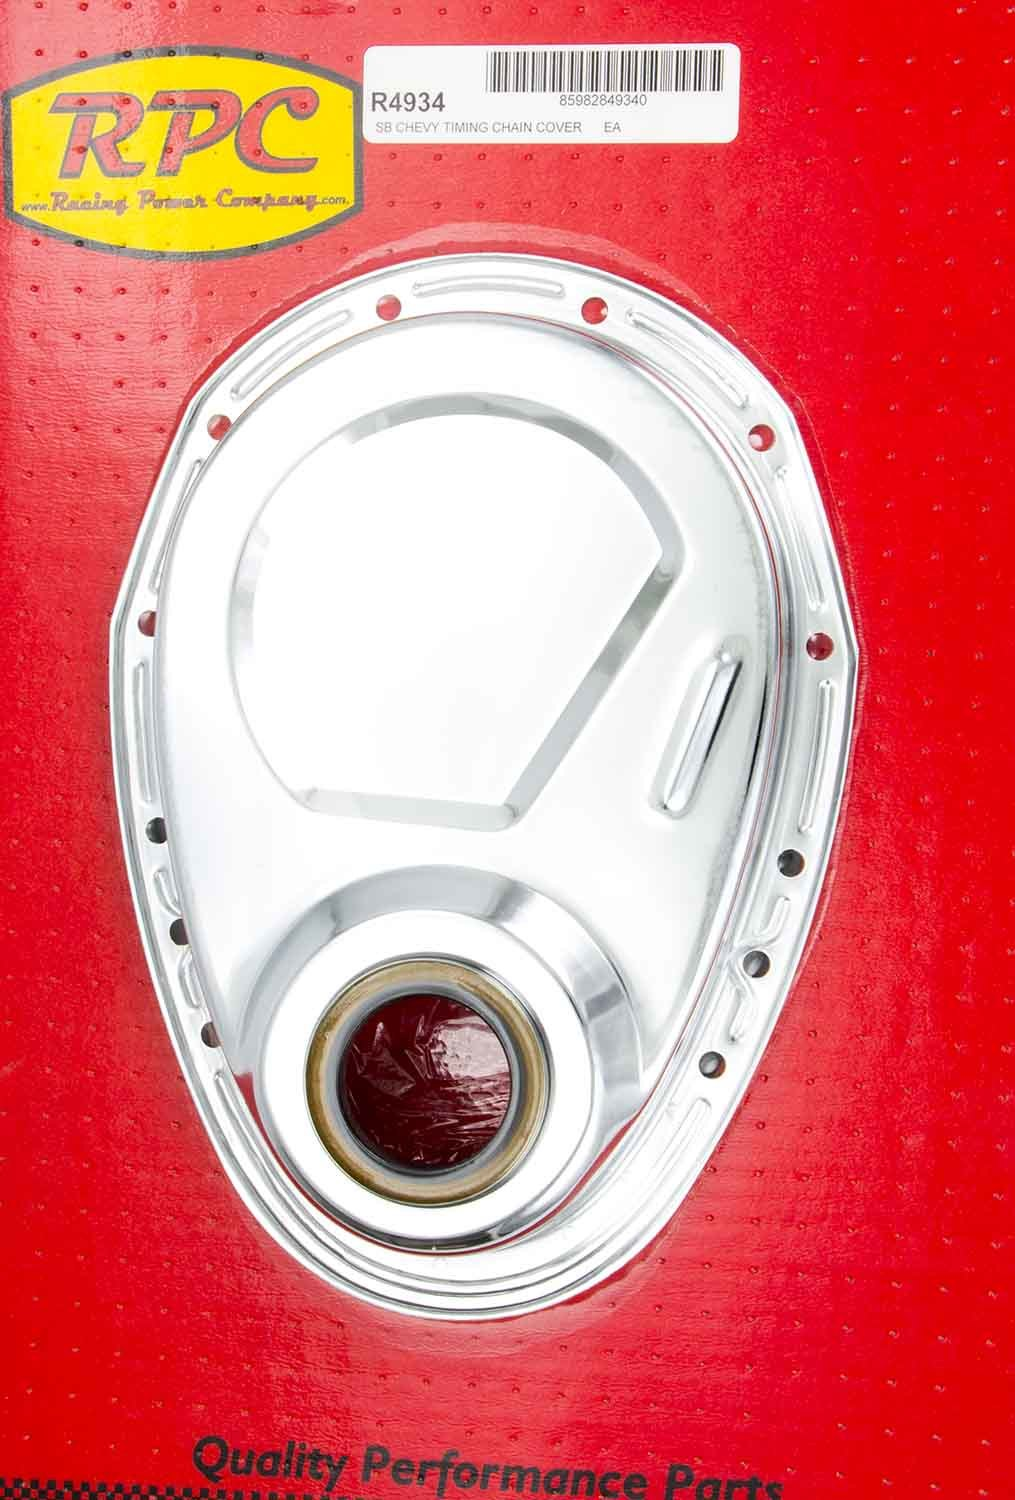 Racing Power Company R4934 Timing Cover, 1 Piece, Gaskets / Hardware / Seal Included, Steel, Chrome, Small Block Chevy, Each